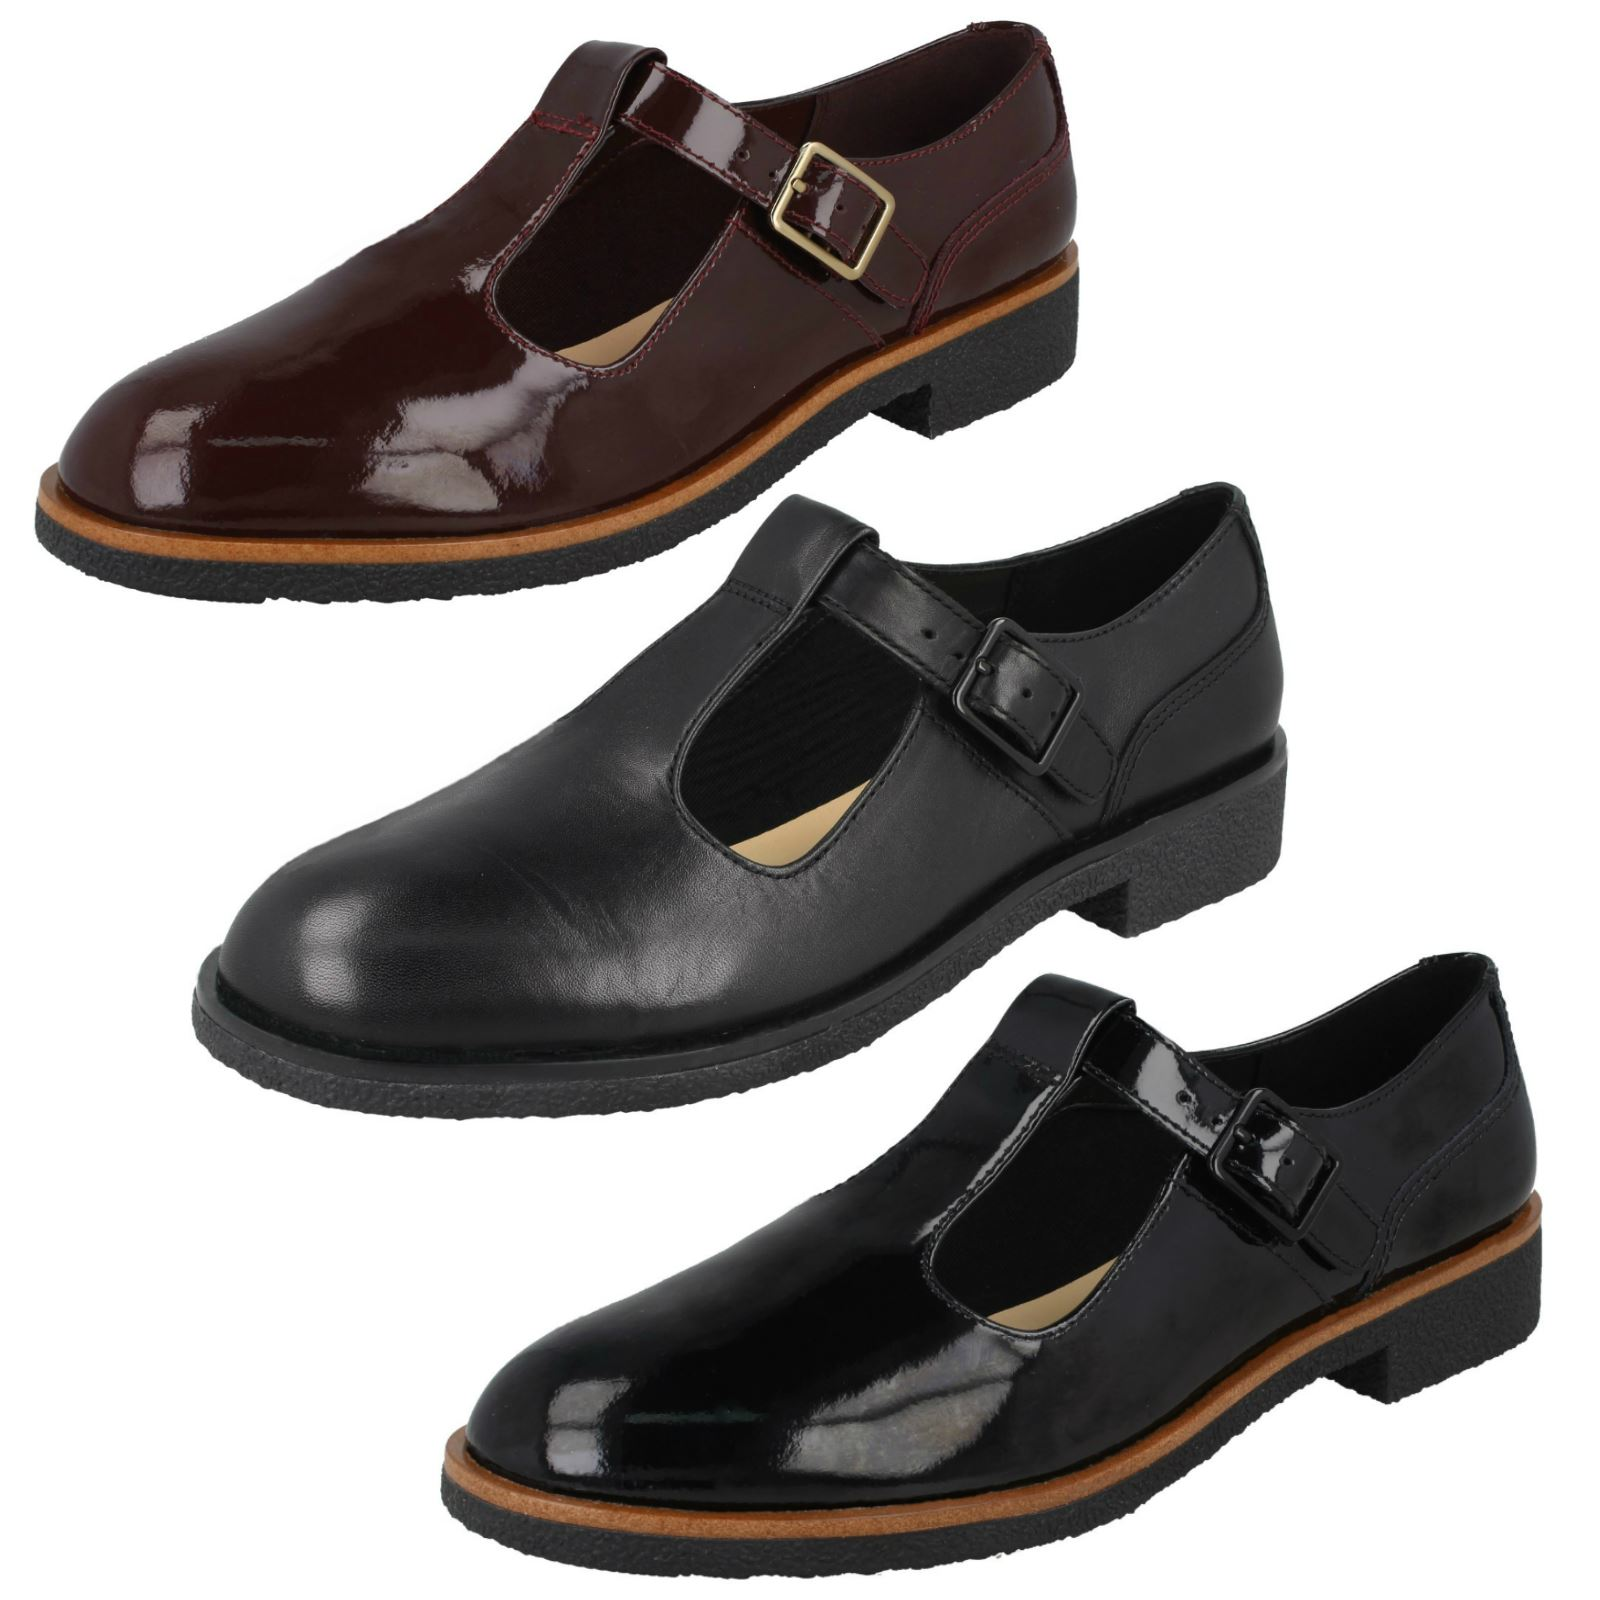 Ladies Clarks T-Bar Heeled Shoes